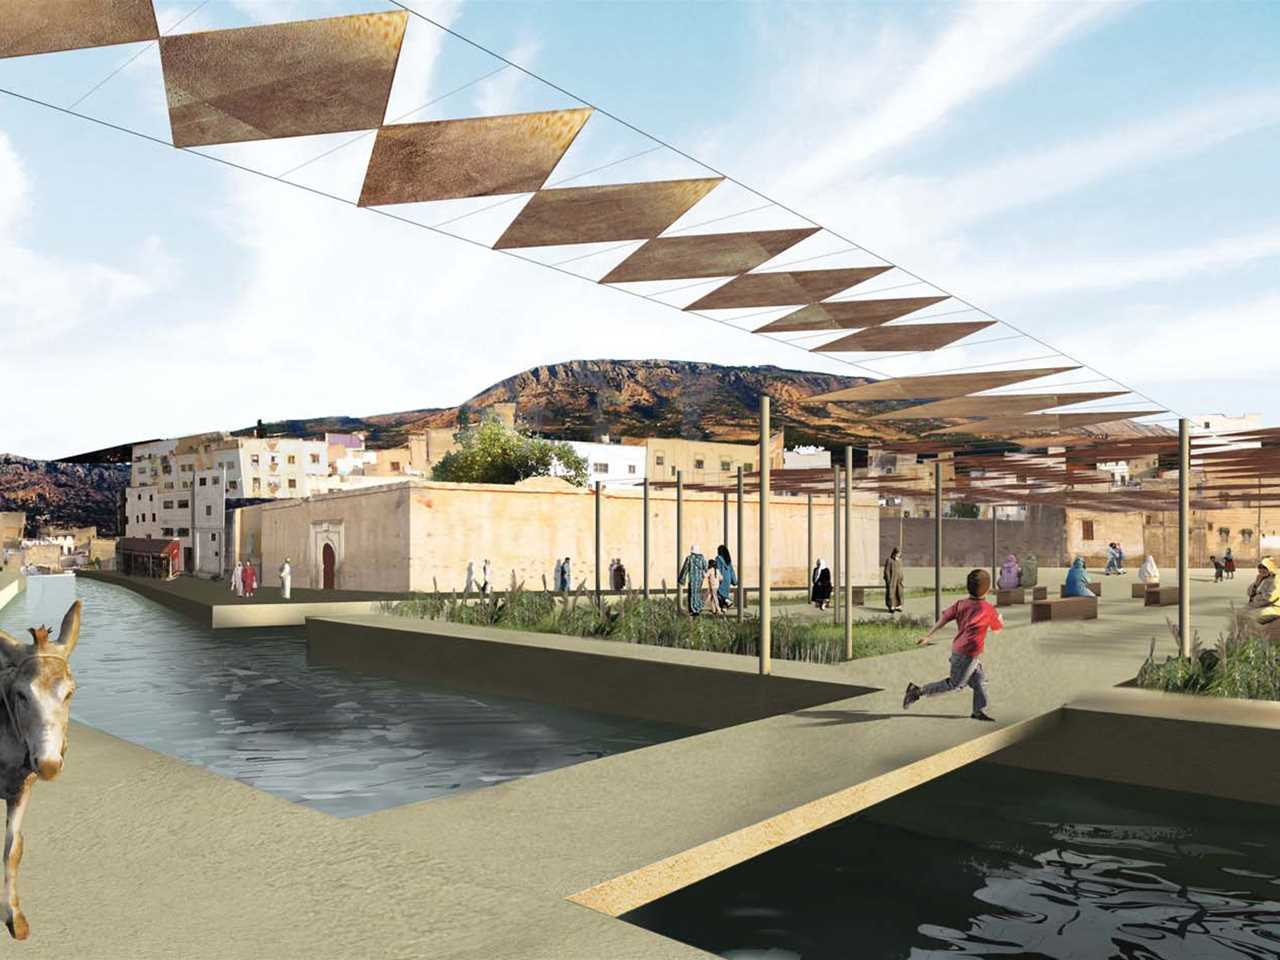 Global Finalist 2009: River remediation and urban development scheme, Fez, Morocco